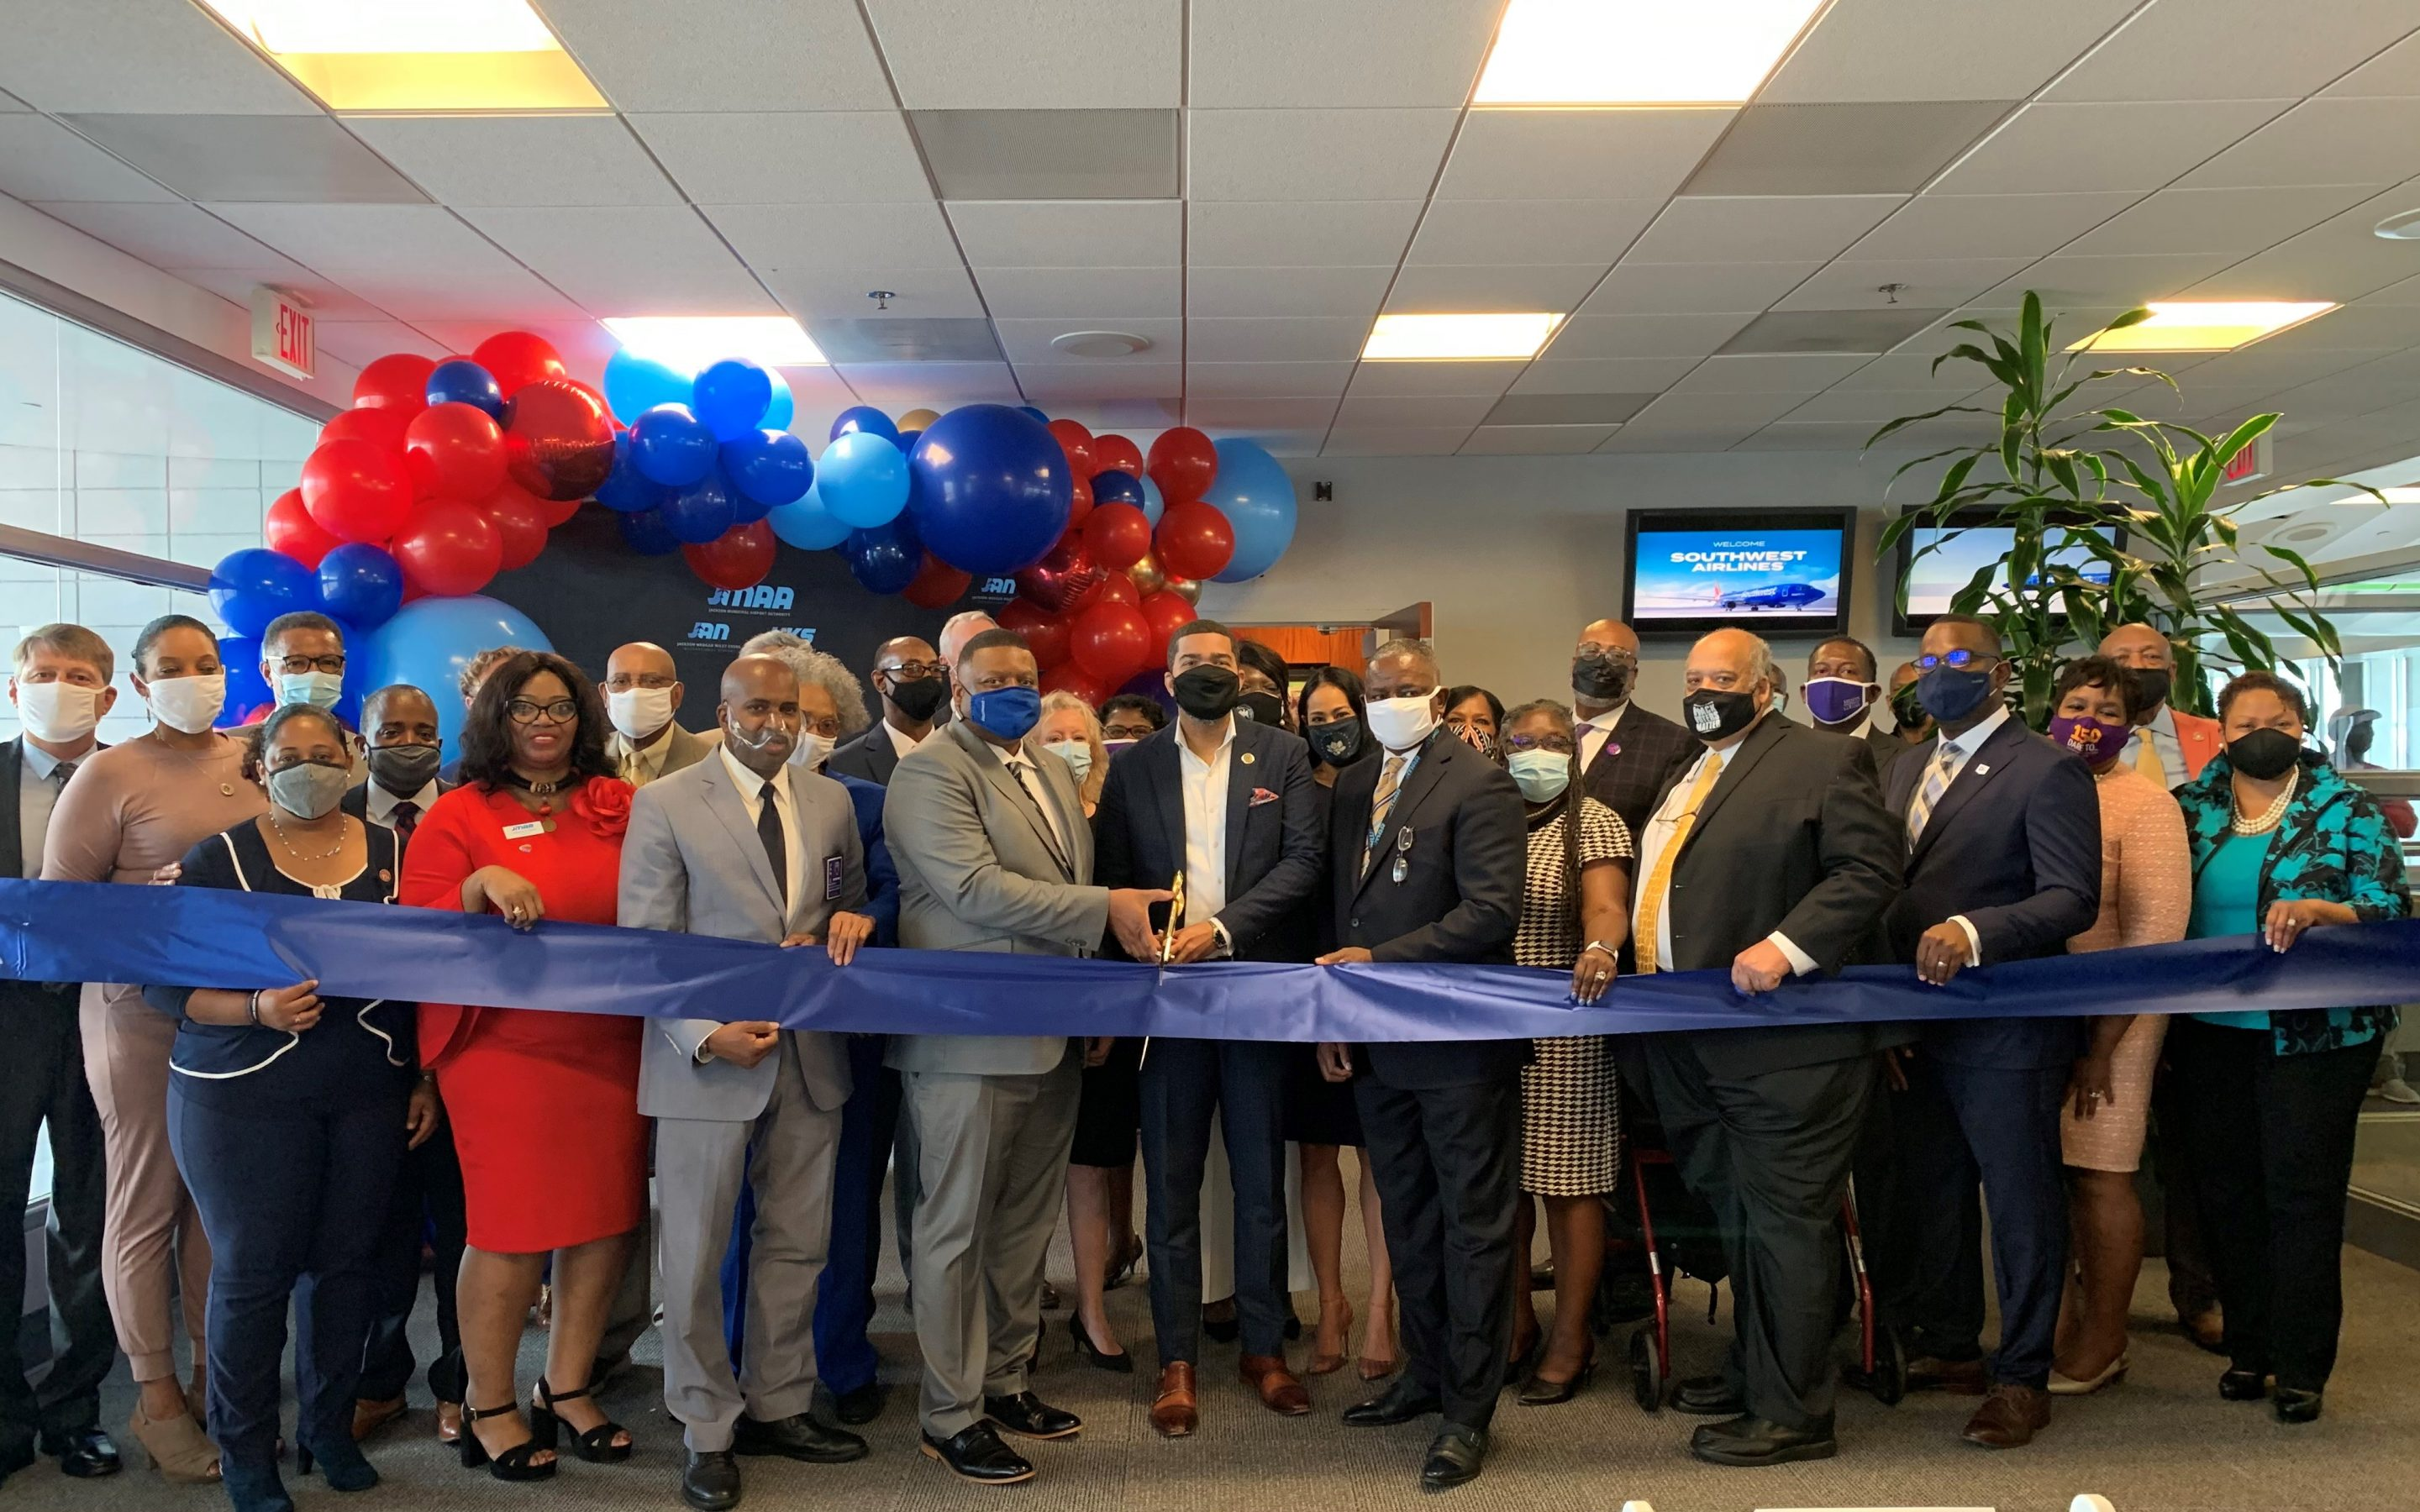 Jackson Municipal Airport Authority Celebrates the Return of Southwest Airlines with Official Ribbon Cutting and Reception at Jackson-Medgar Wiley Evers International Airport